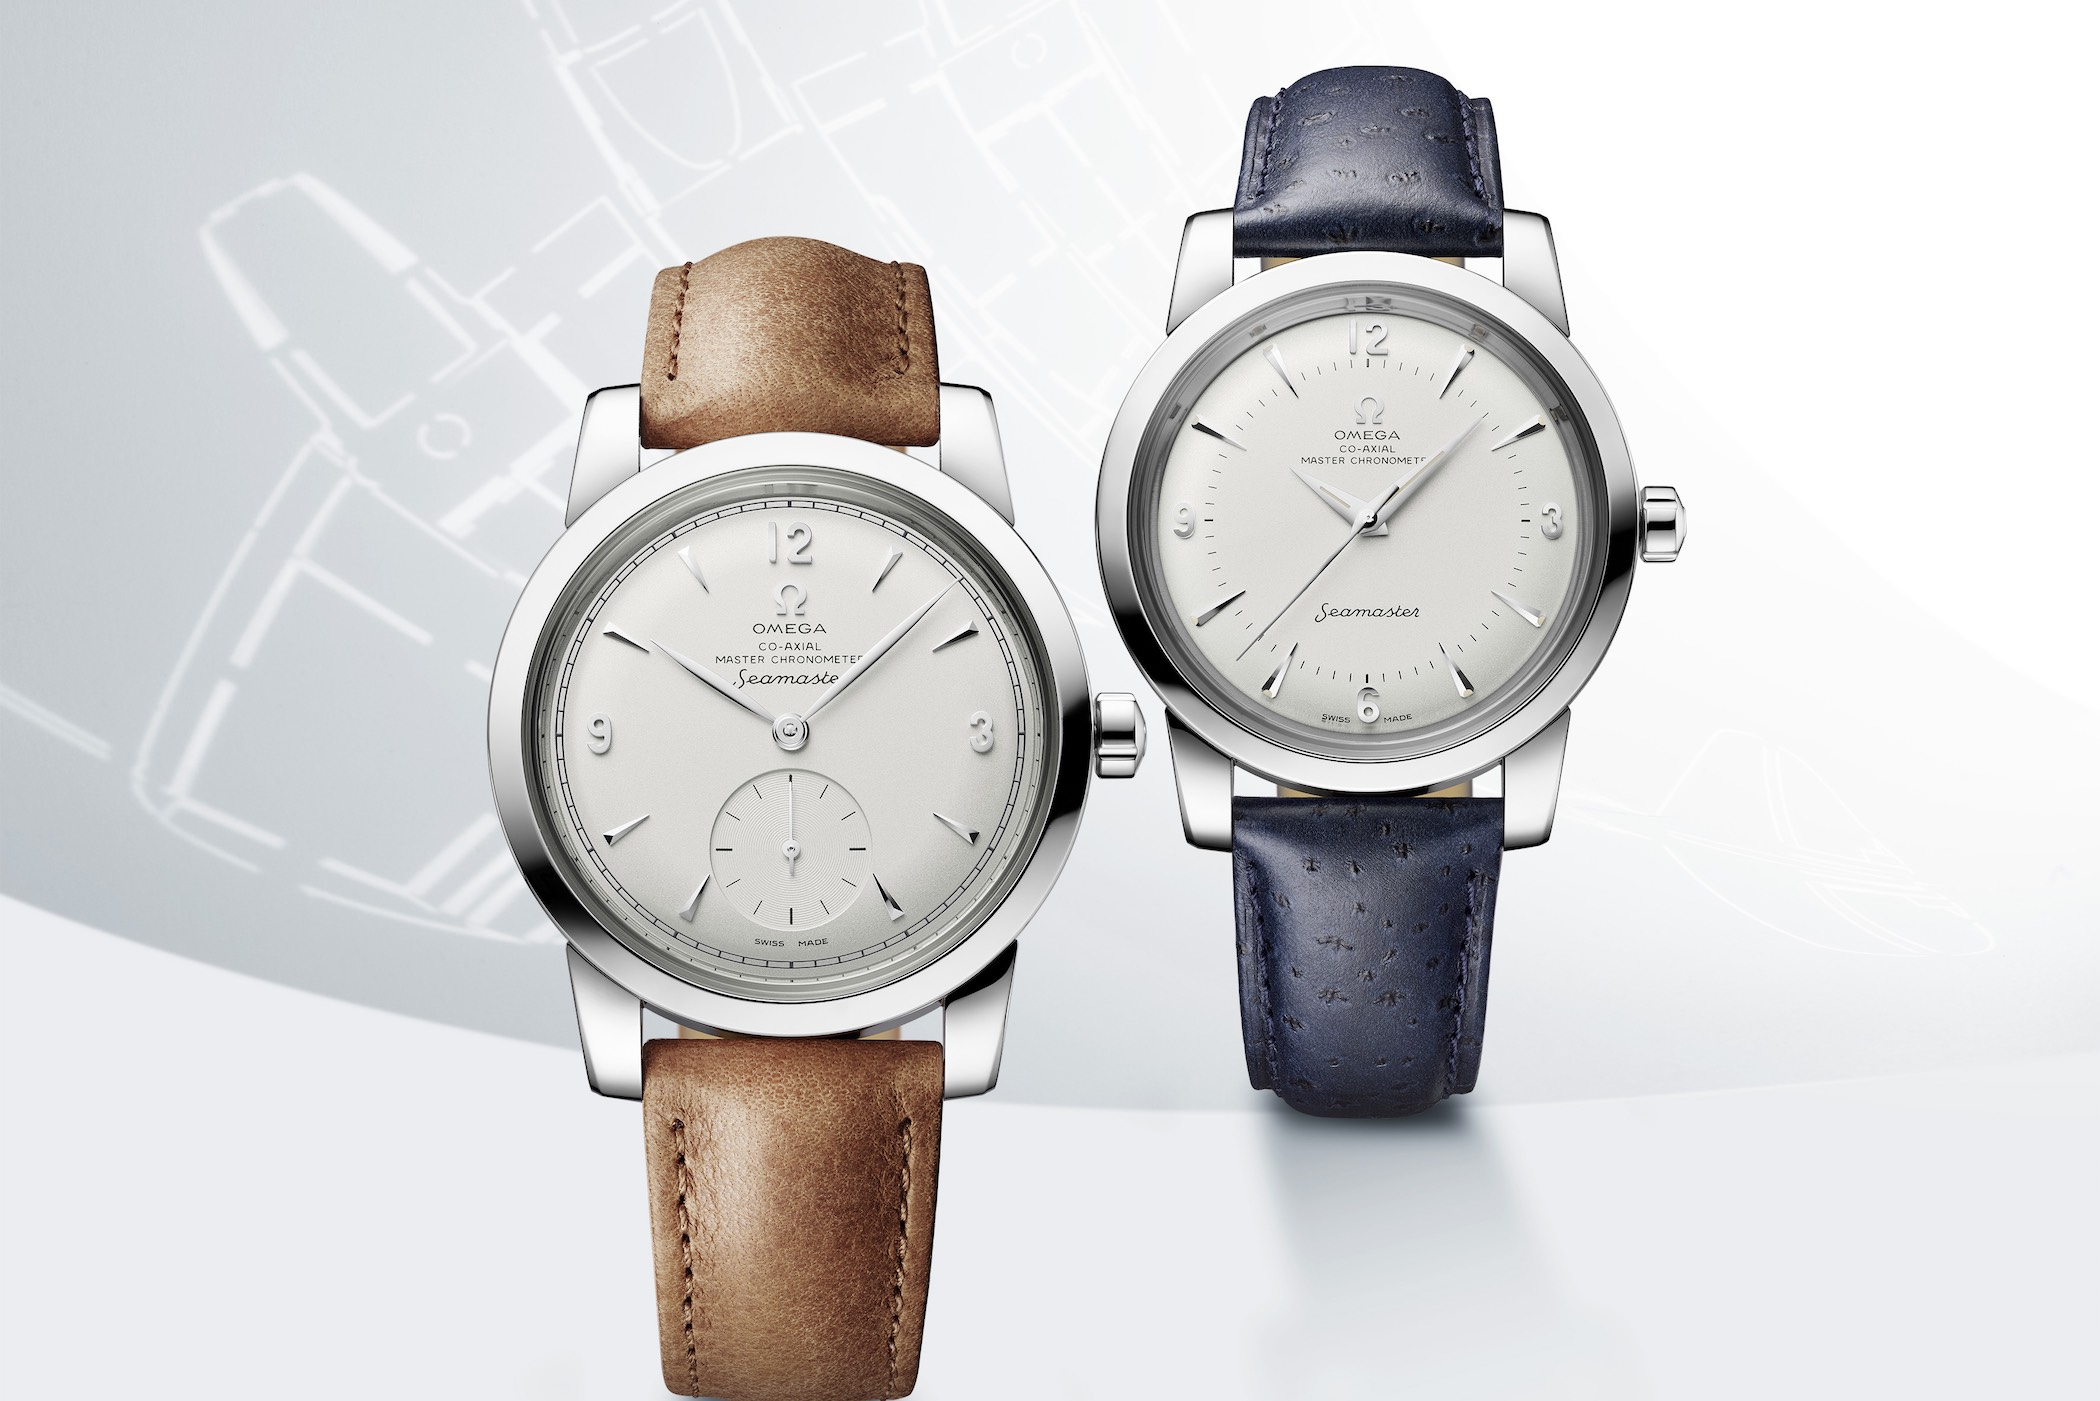 Omega Seamaster Replica Watches Aaa Omega Replica Watches Online